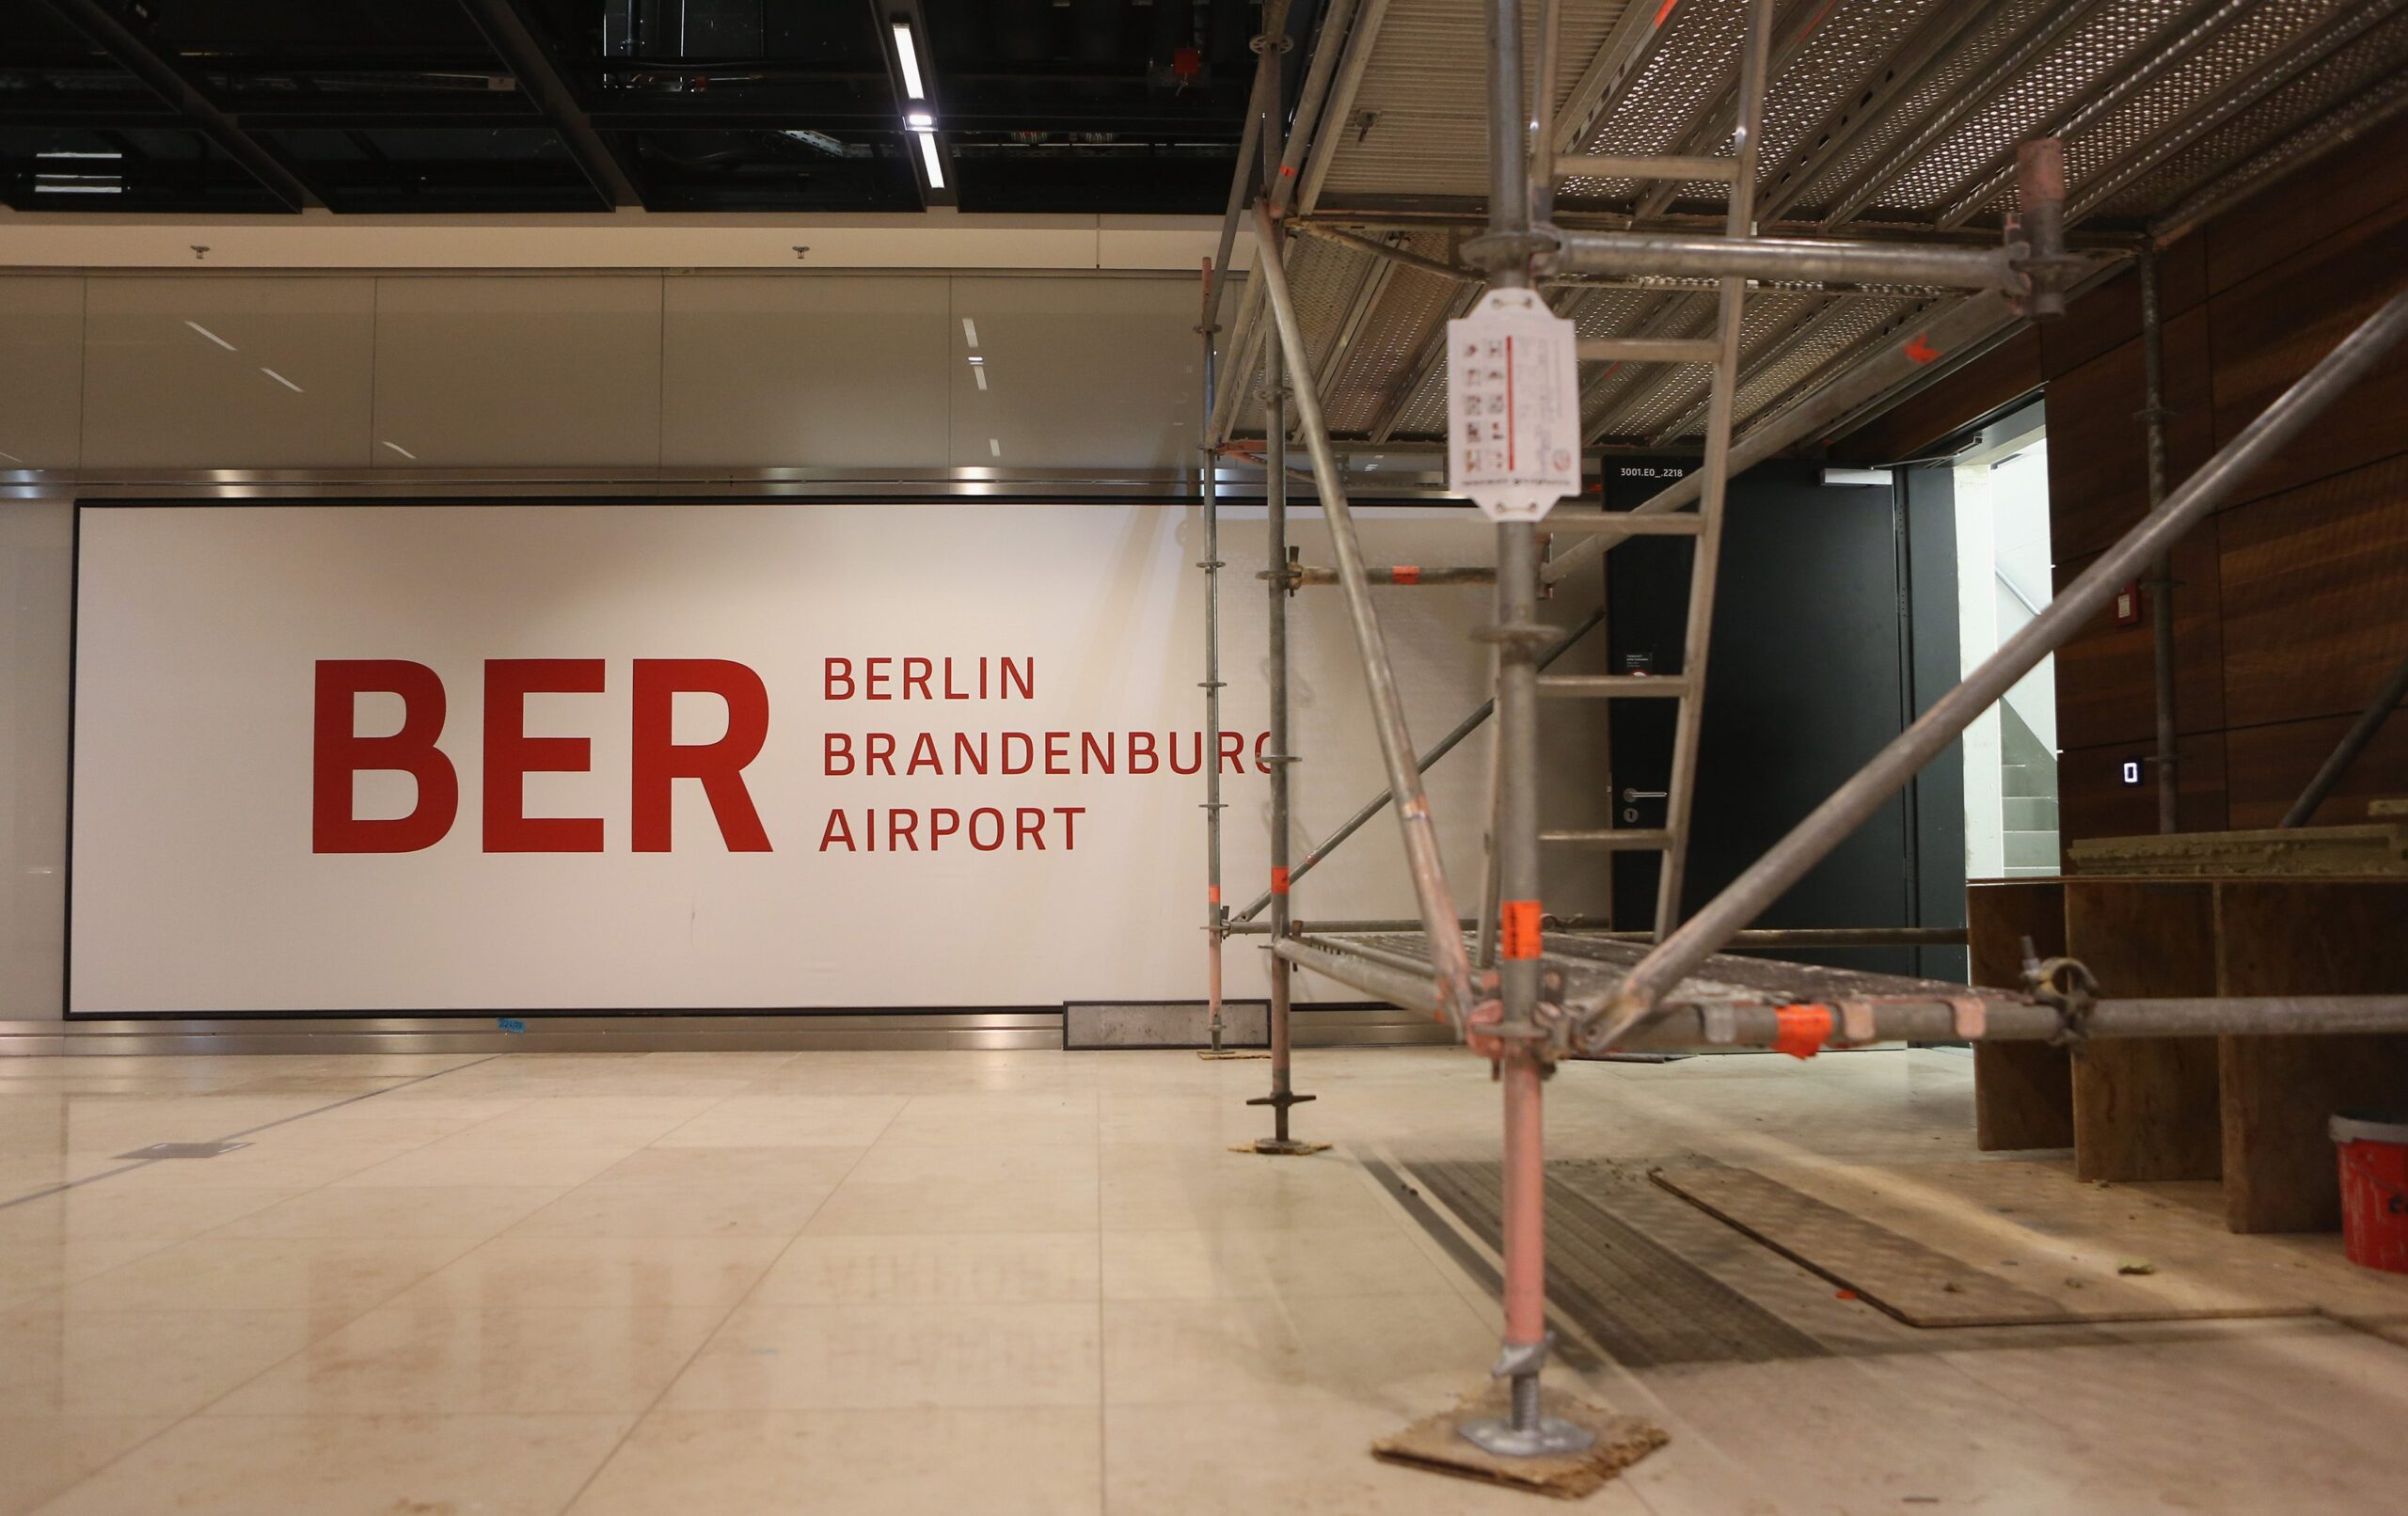 Berlin's long-delayed Brandenburg airport is finally opening